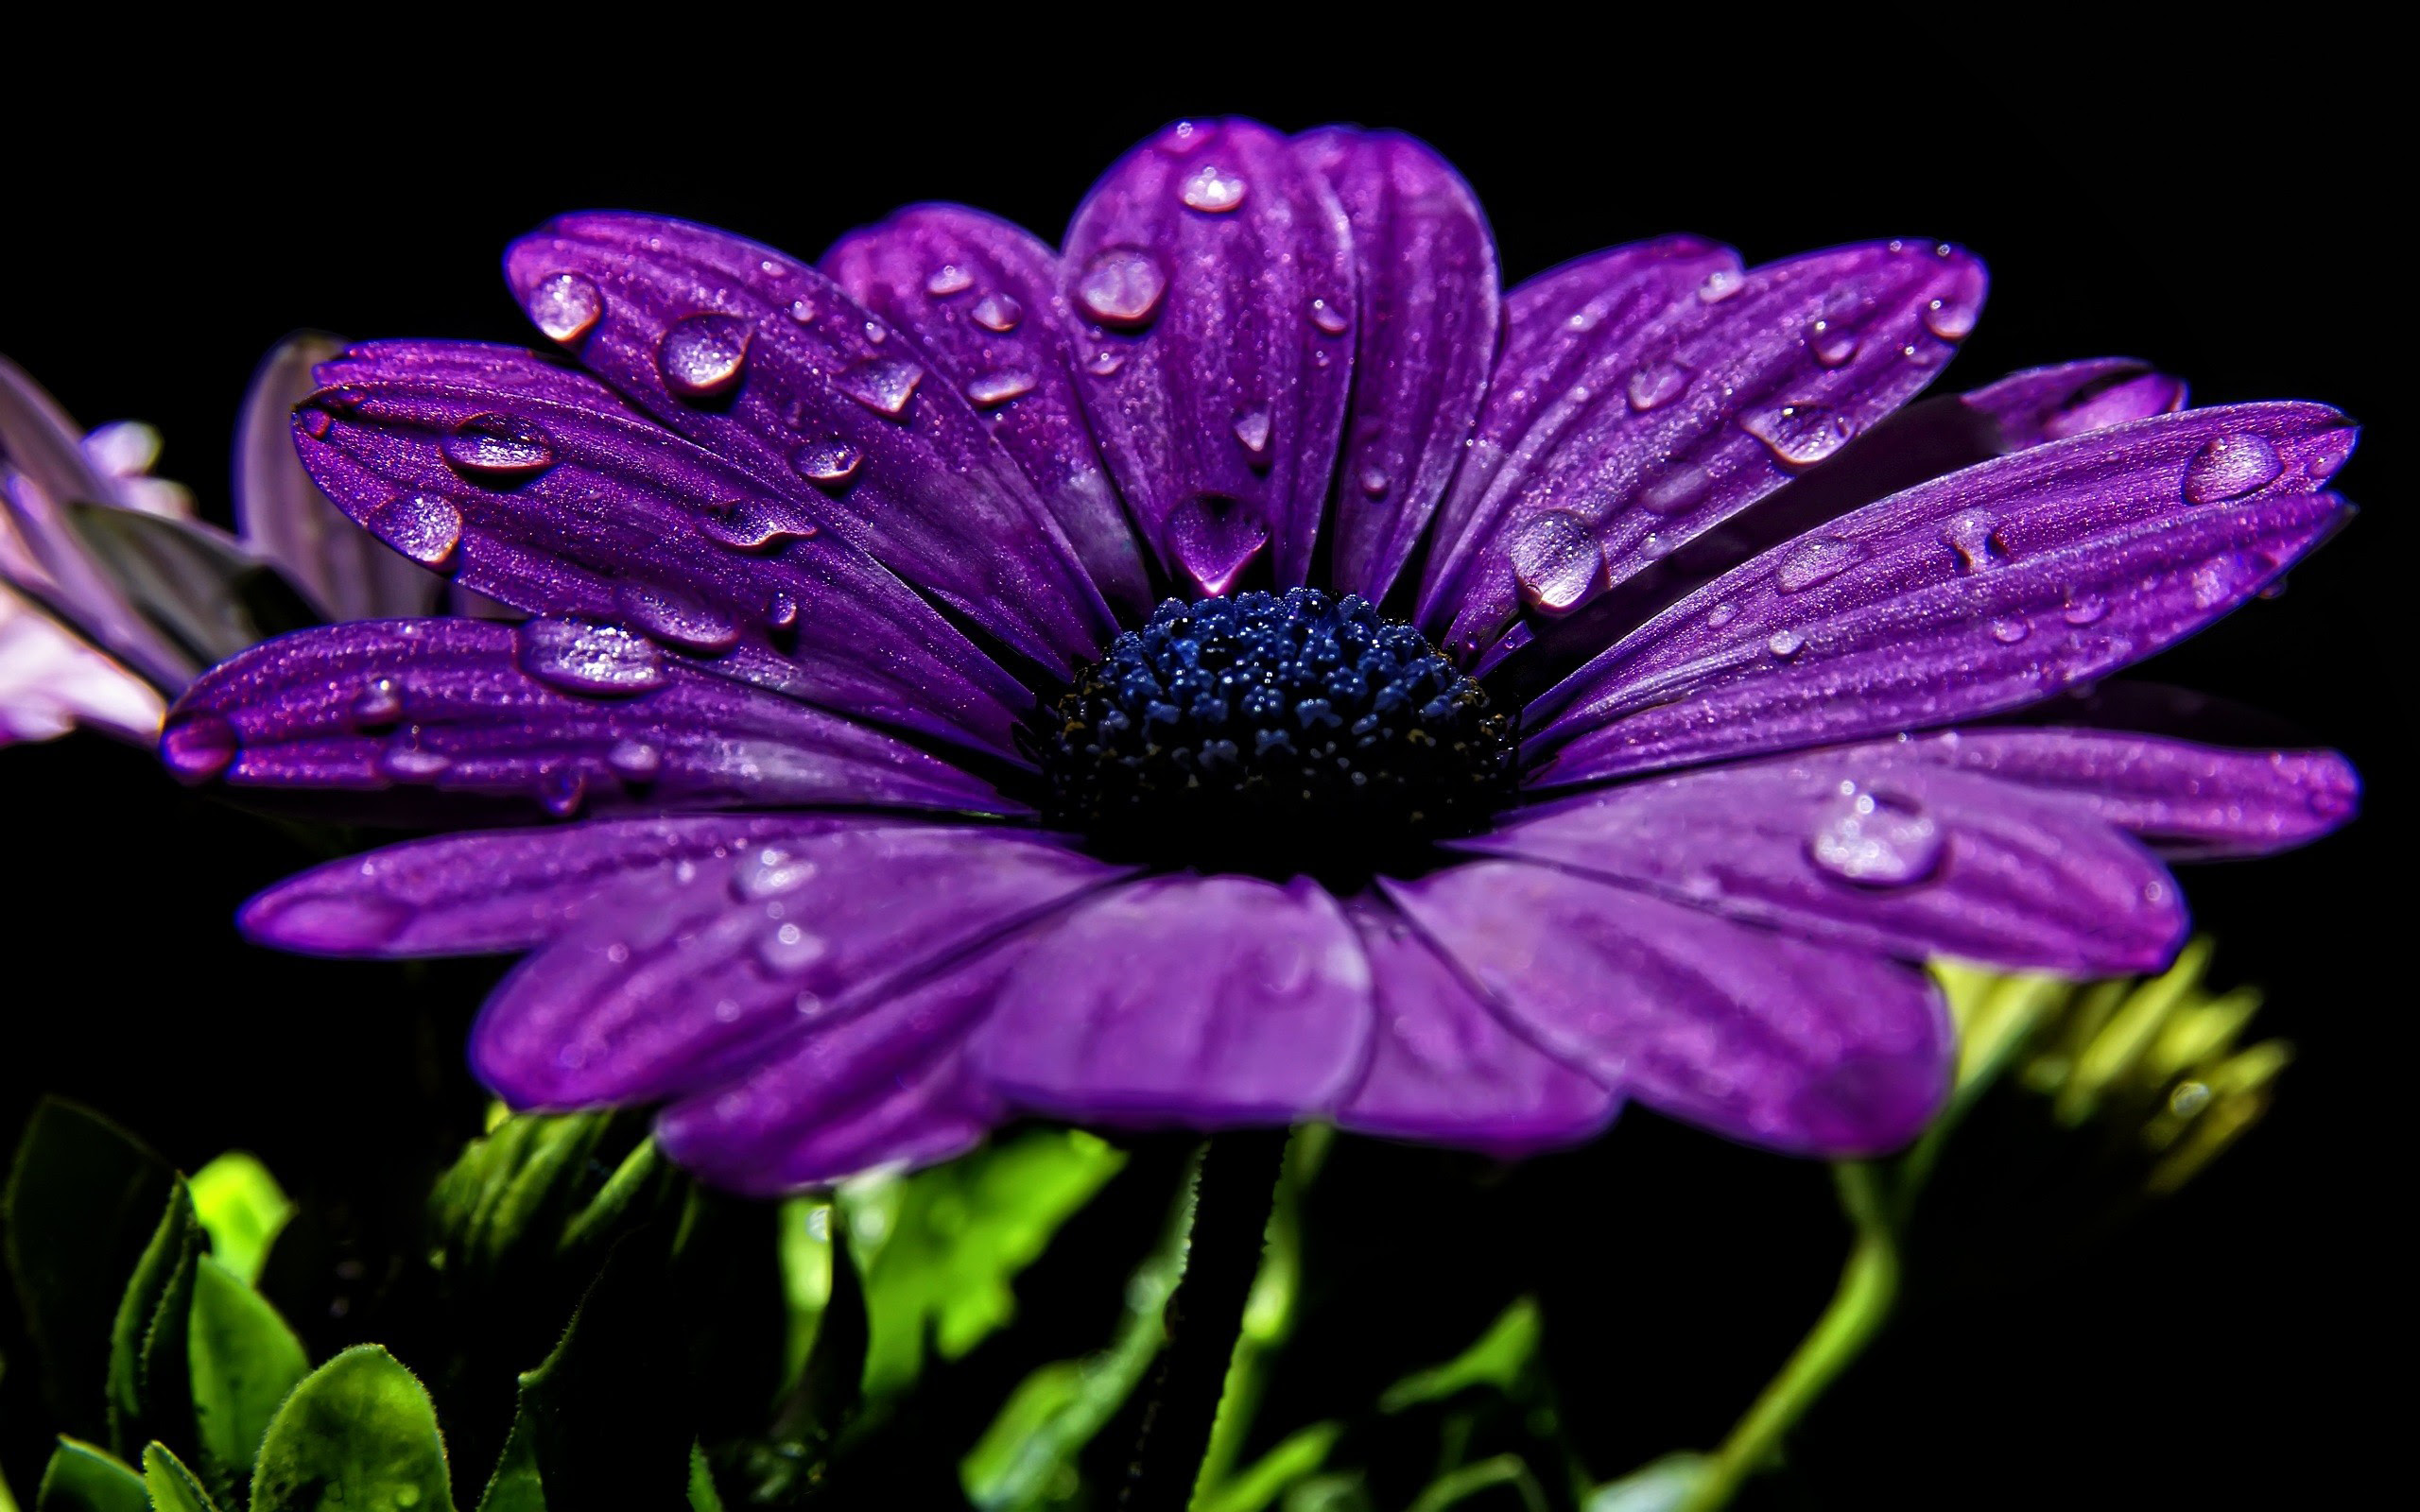 39 High Definition Purple Wallpaper Images for Free Download